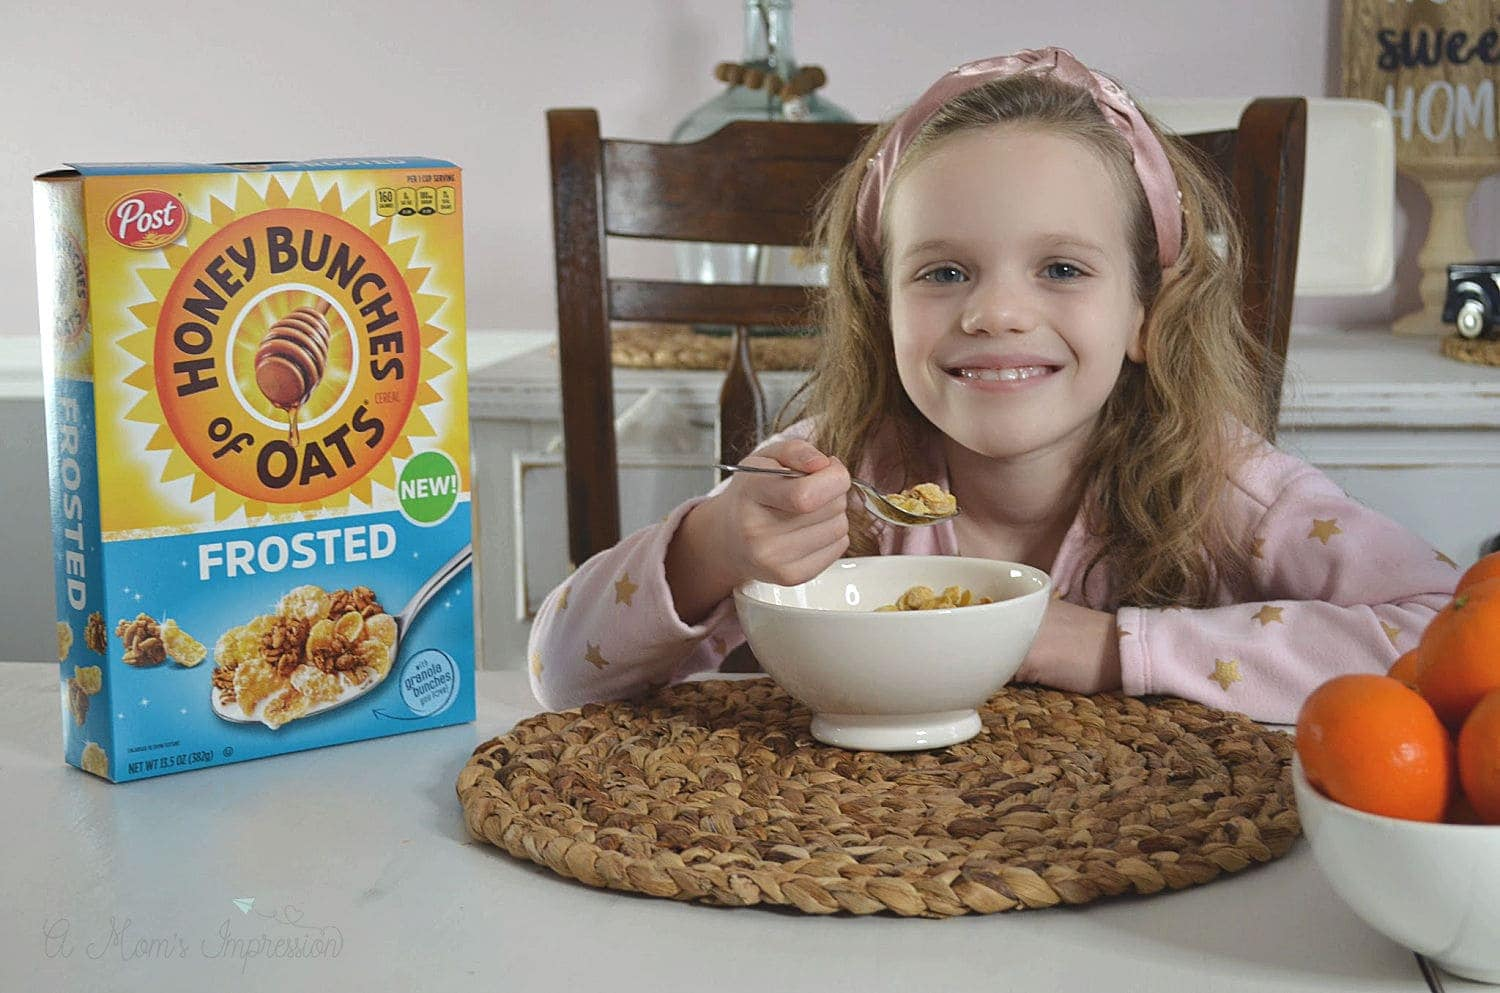 a girl smiling a she is eating breakfast cereal